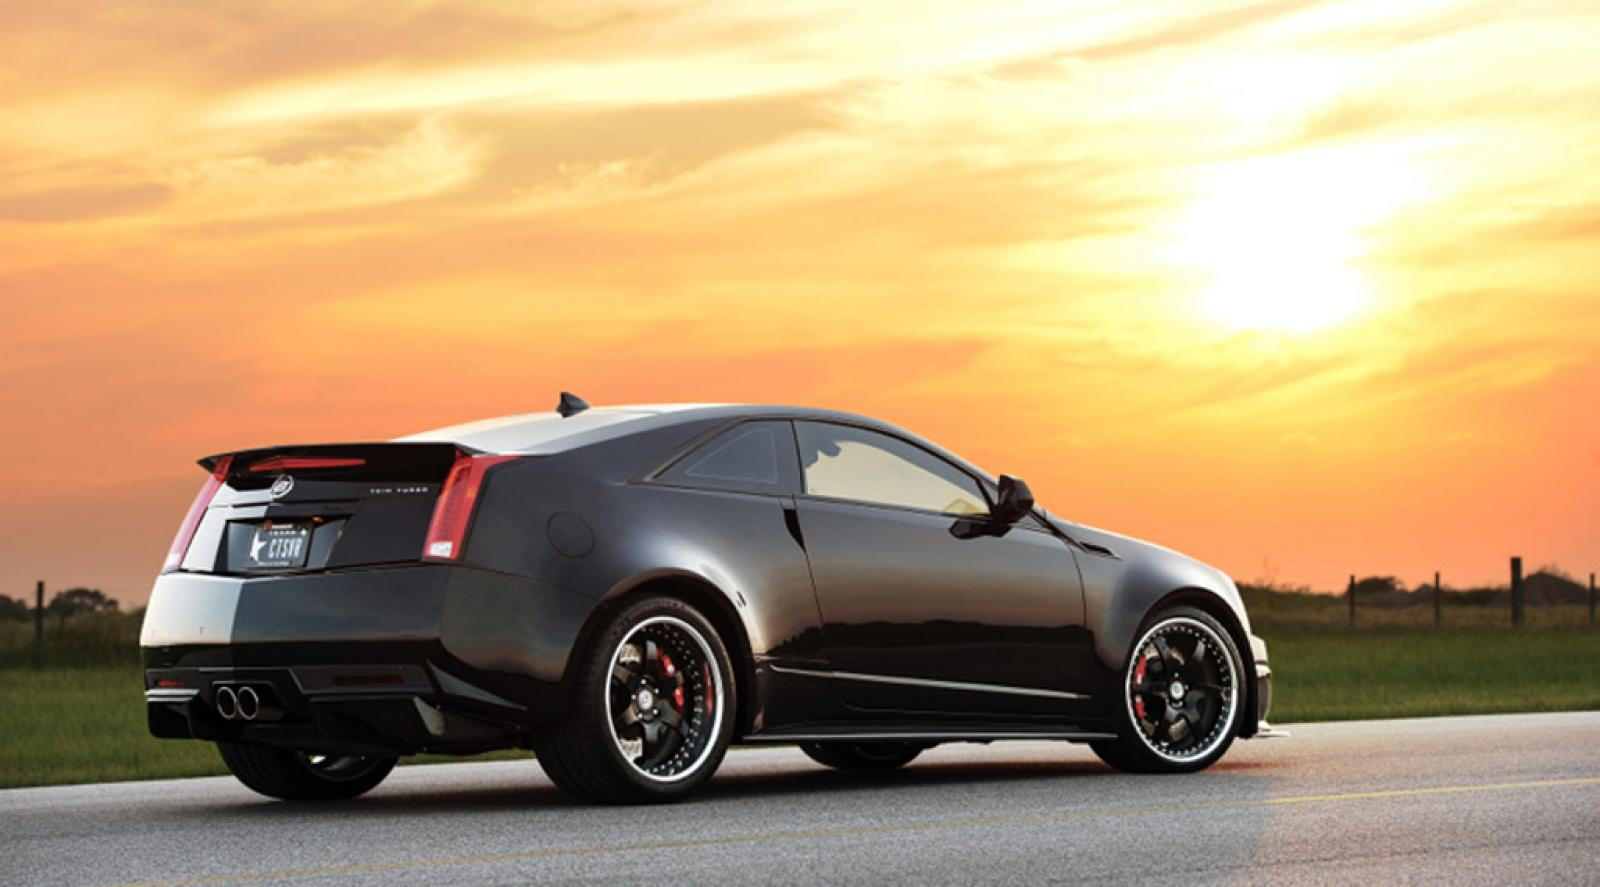 2013 cadillac cts coupe information and photos zombiedrive. Black Bedroom Furniture Sets. Home Design Ideas